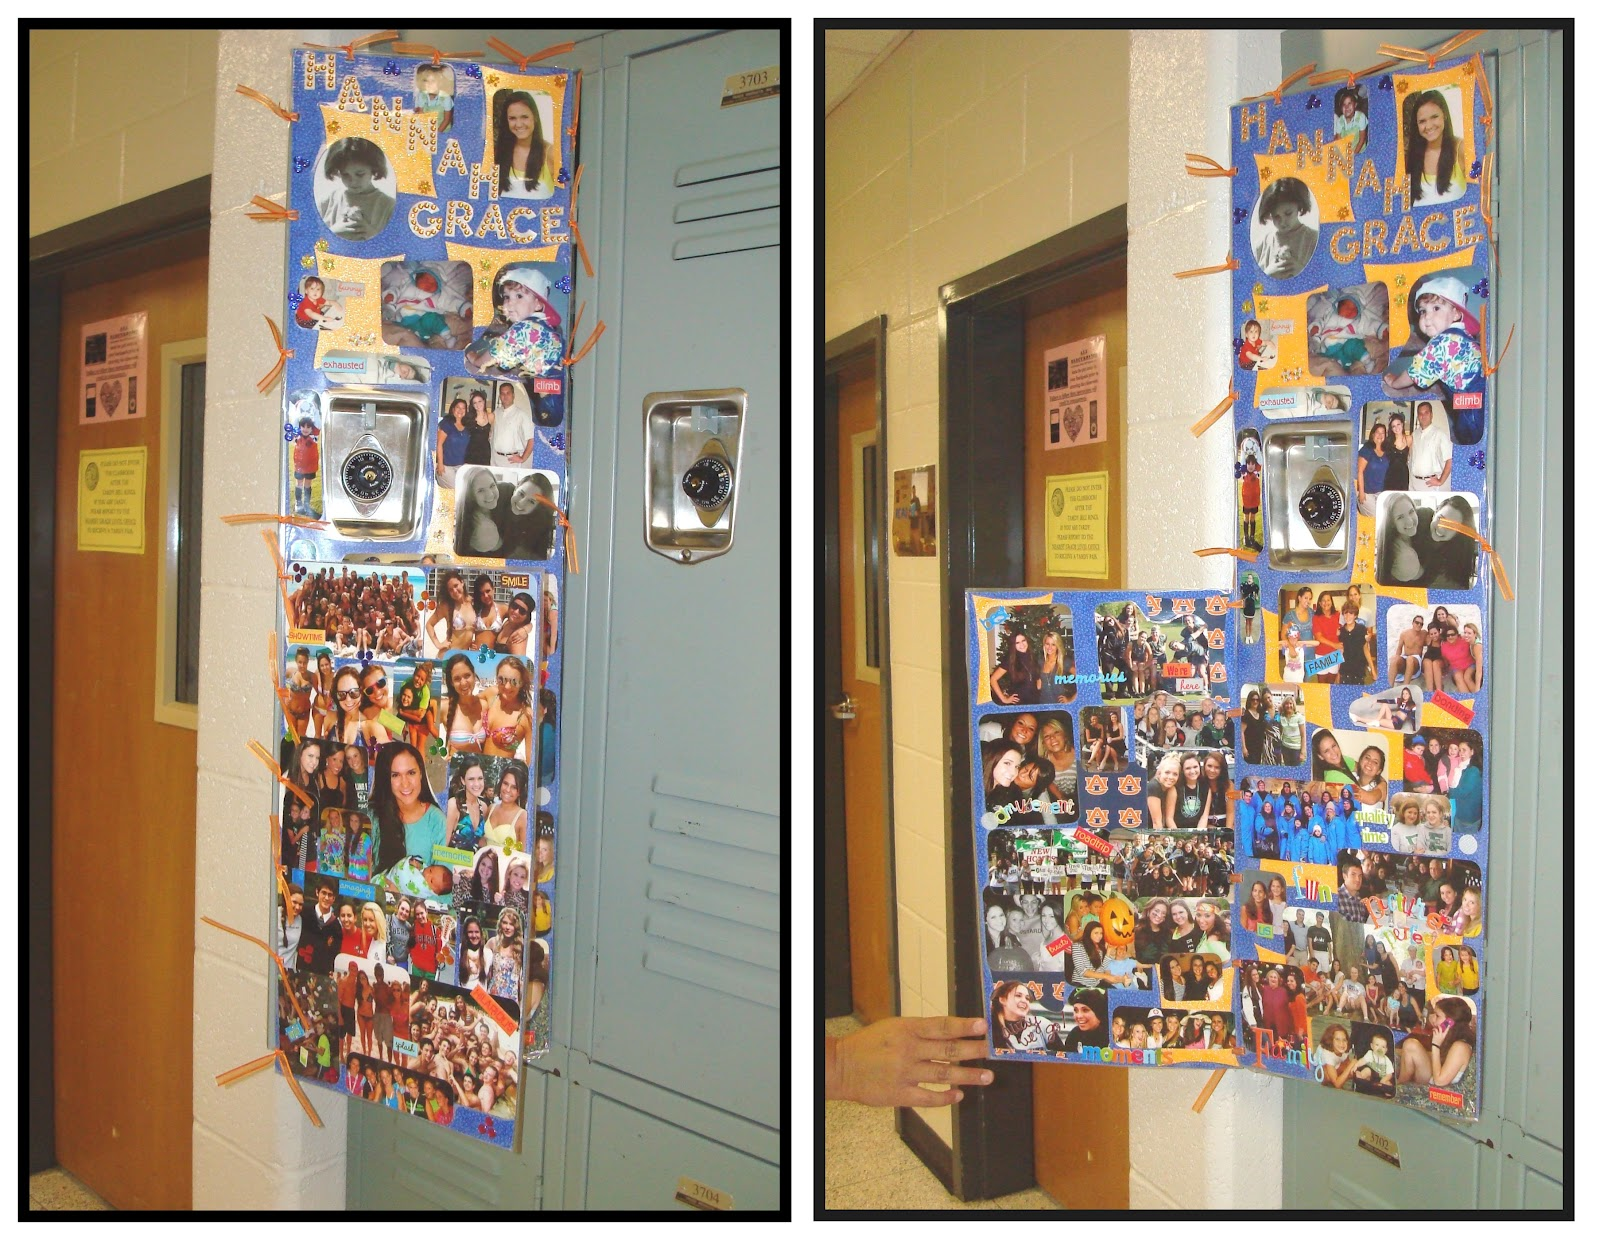 Wednesday July 6 2011 : ideas for decorating lockers - www.pureclipart.com